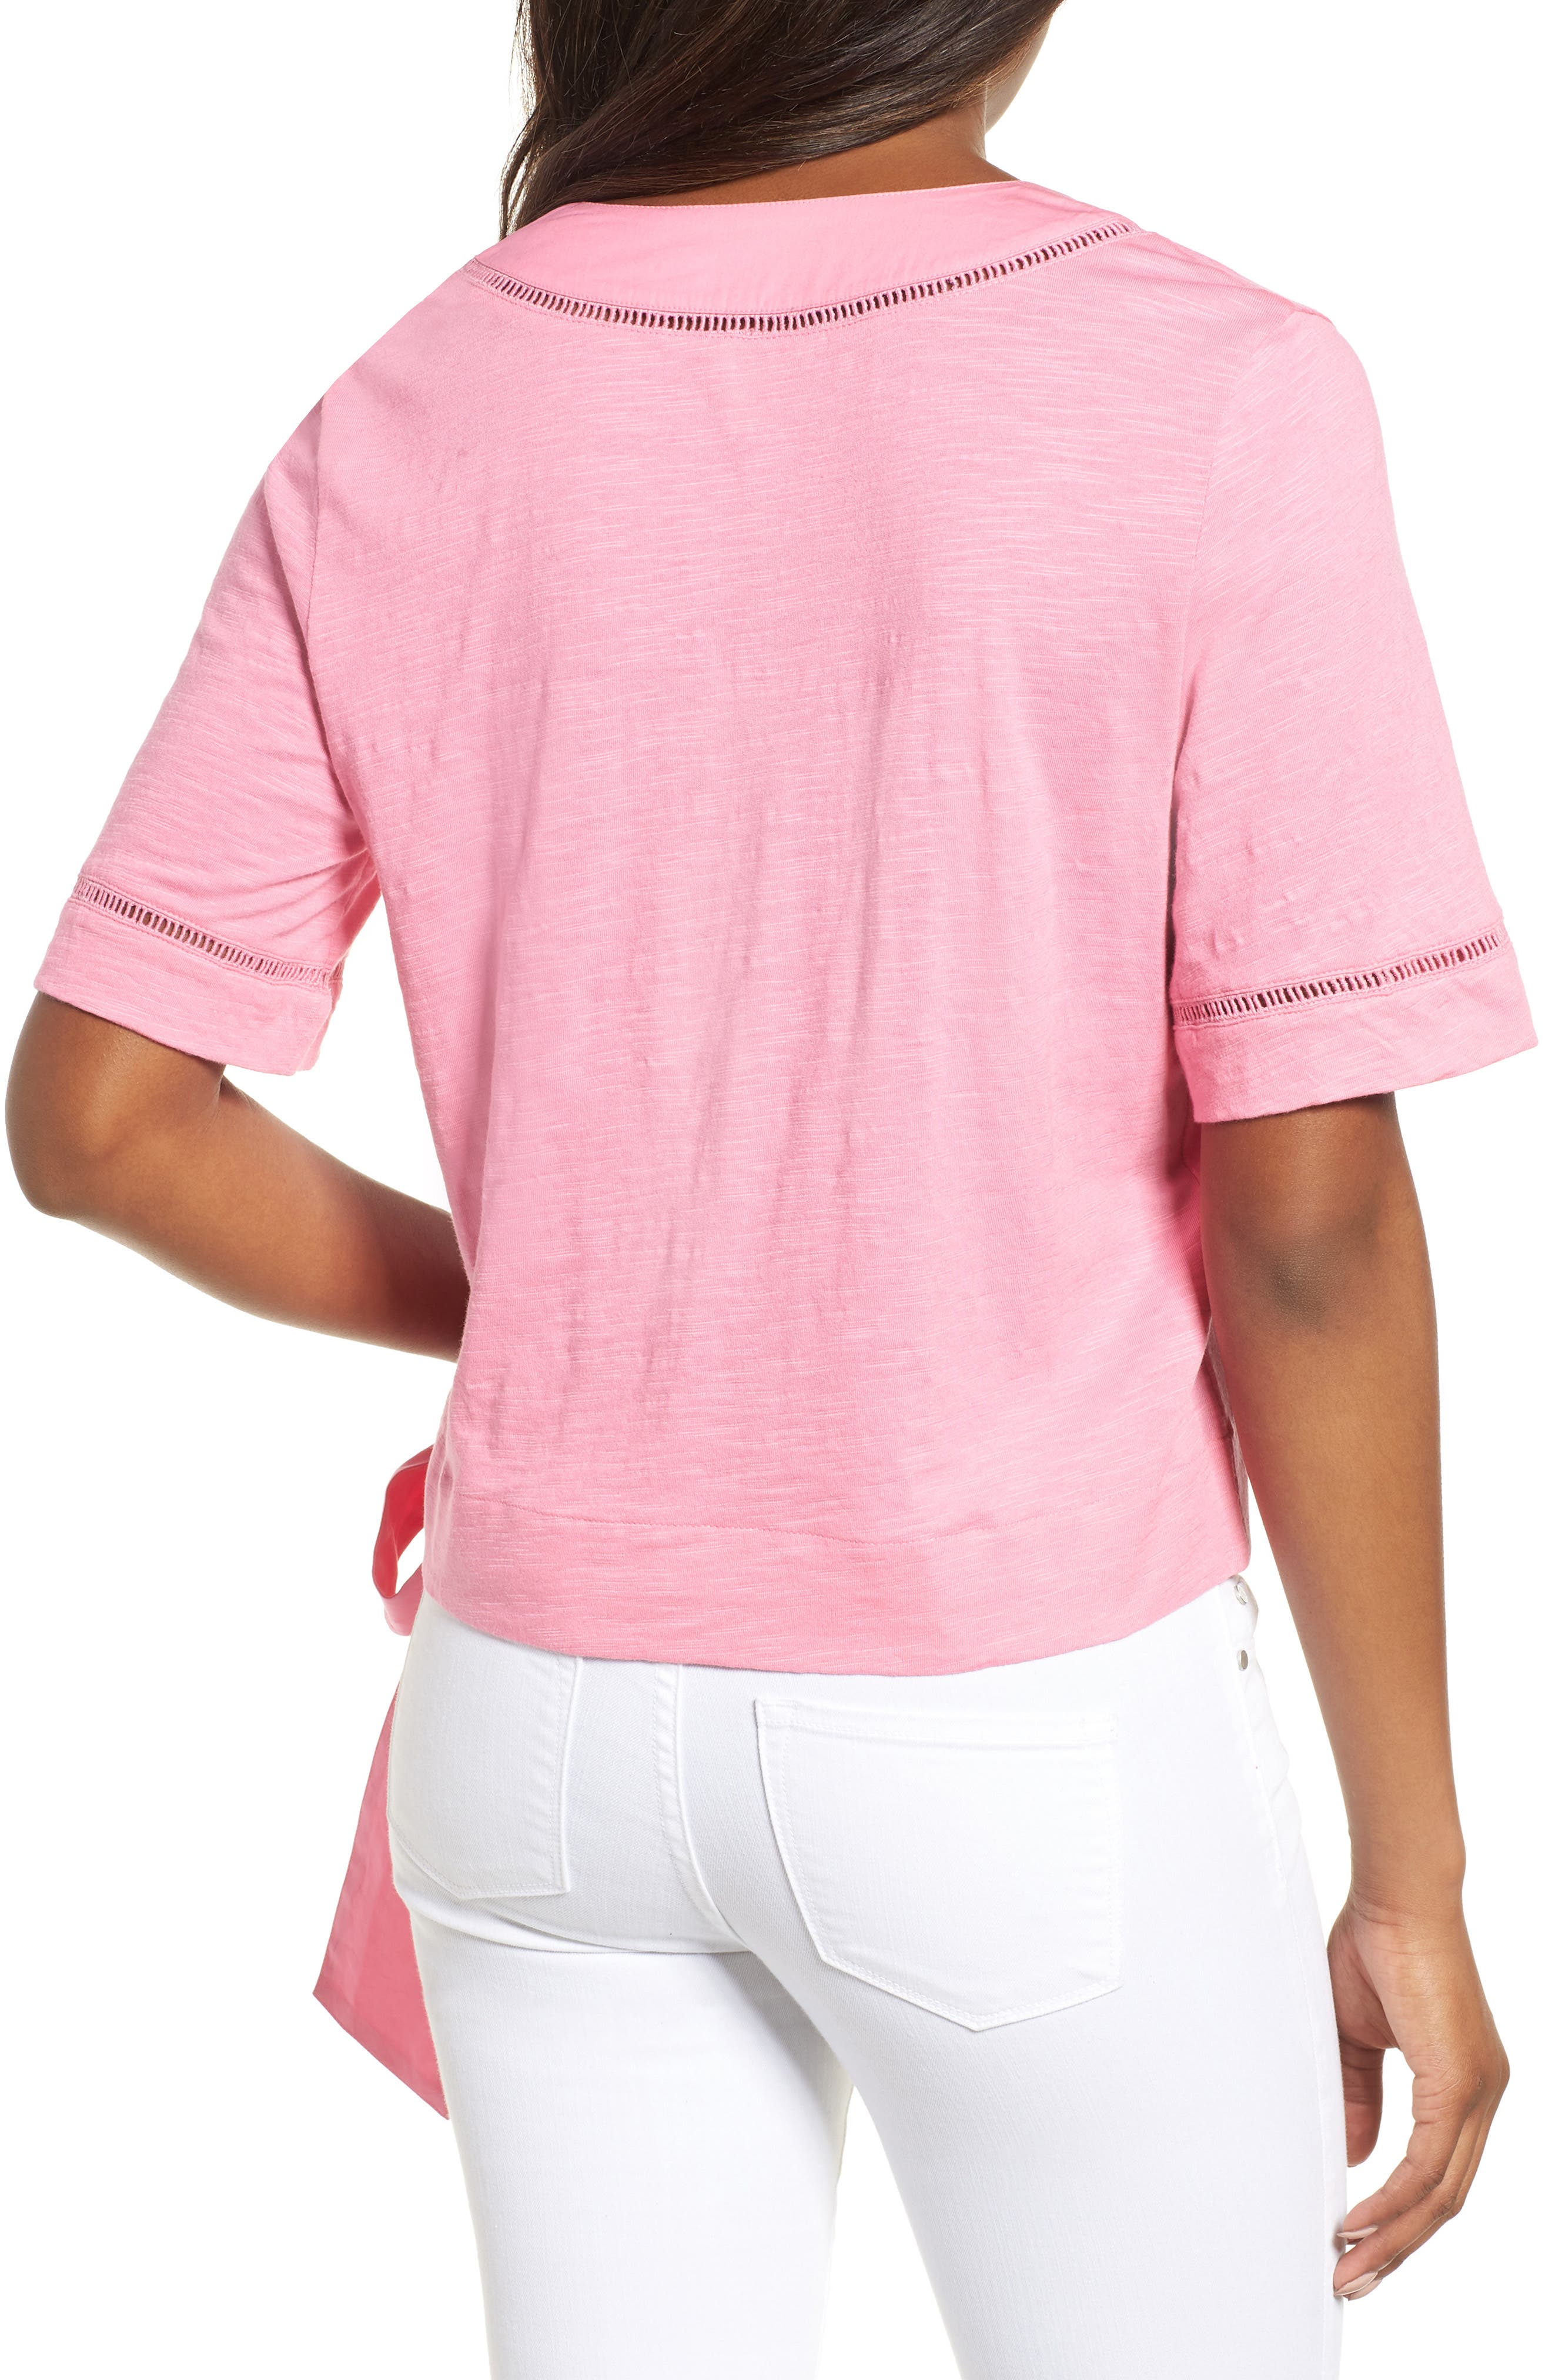 Tie Front Wrap Top,                             Alternate thumbnail 2, color,                             Pink Aurora